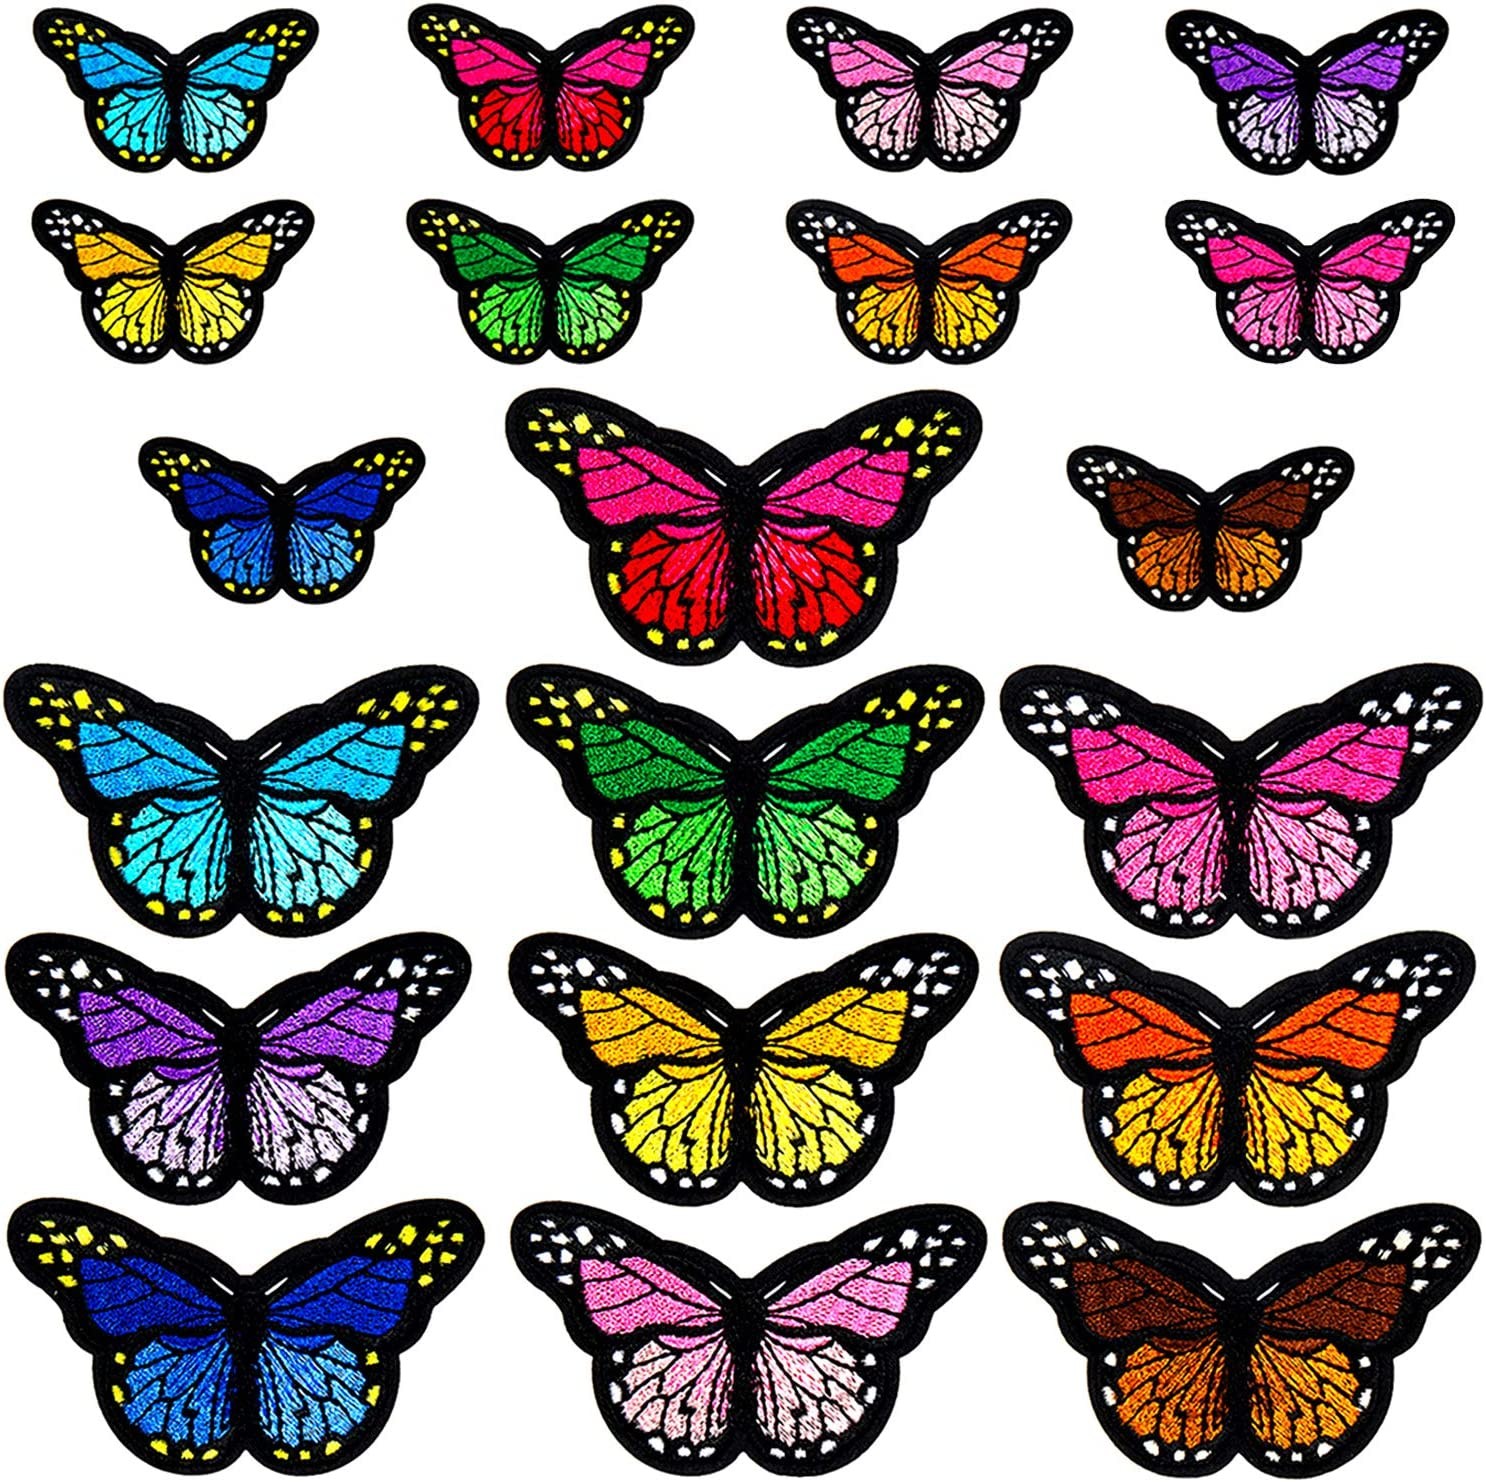 12 Pieces Butterfly Iron on Patches Embroidery Applique Patches for Arts Crafts